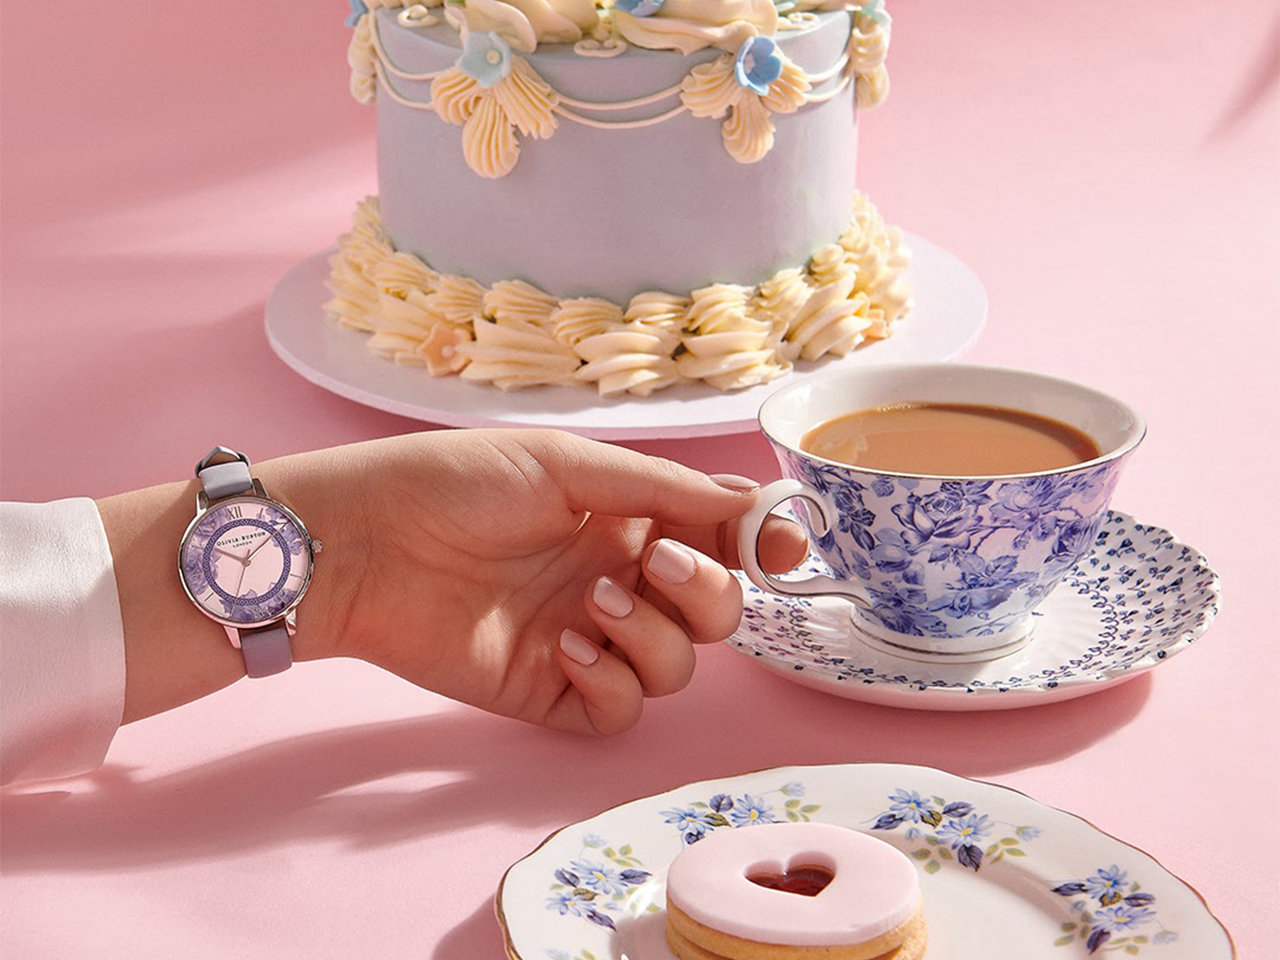 OLIVIA BURTON COLLABORATES WITH PEGGY PORSCHEN ON THE LAUNCH OF ITS TEA PARTY COLLECTION